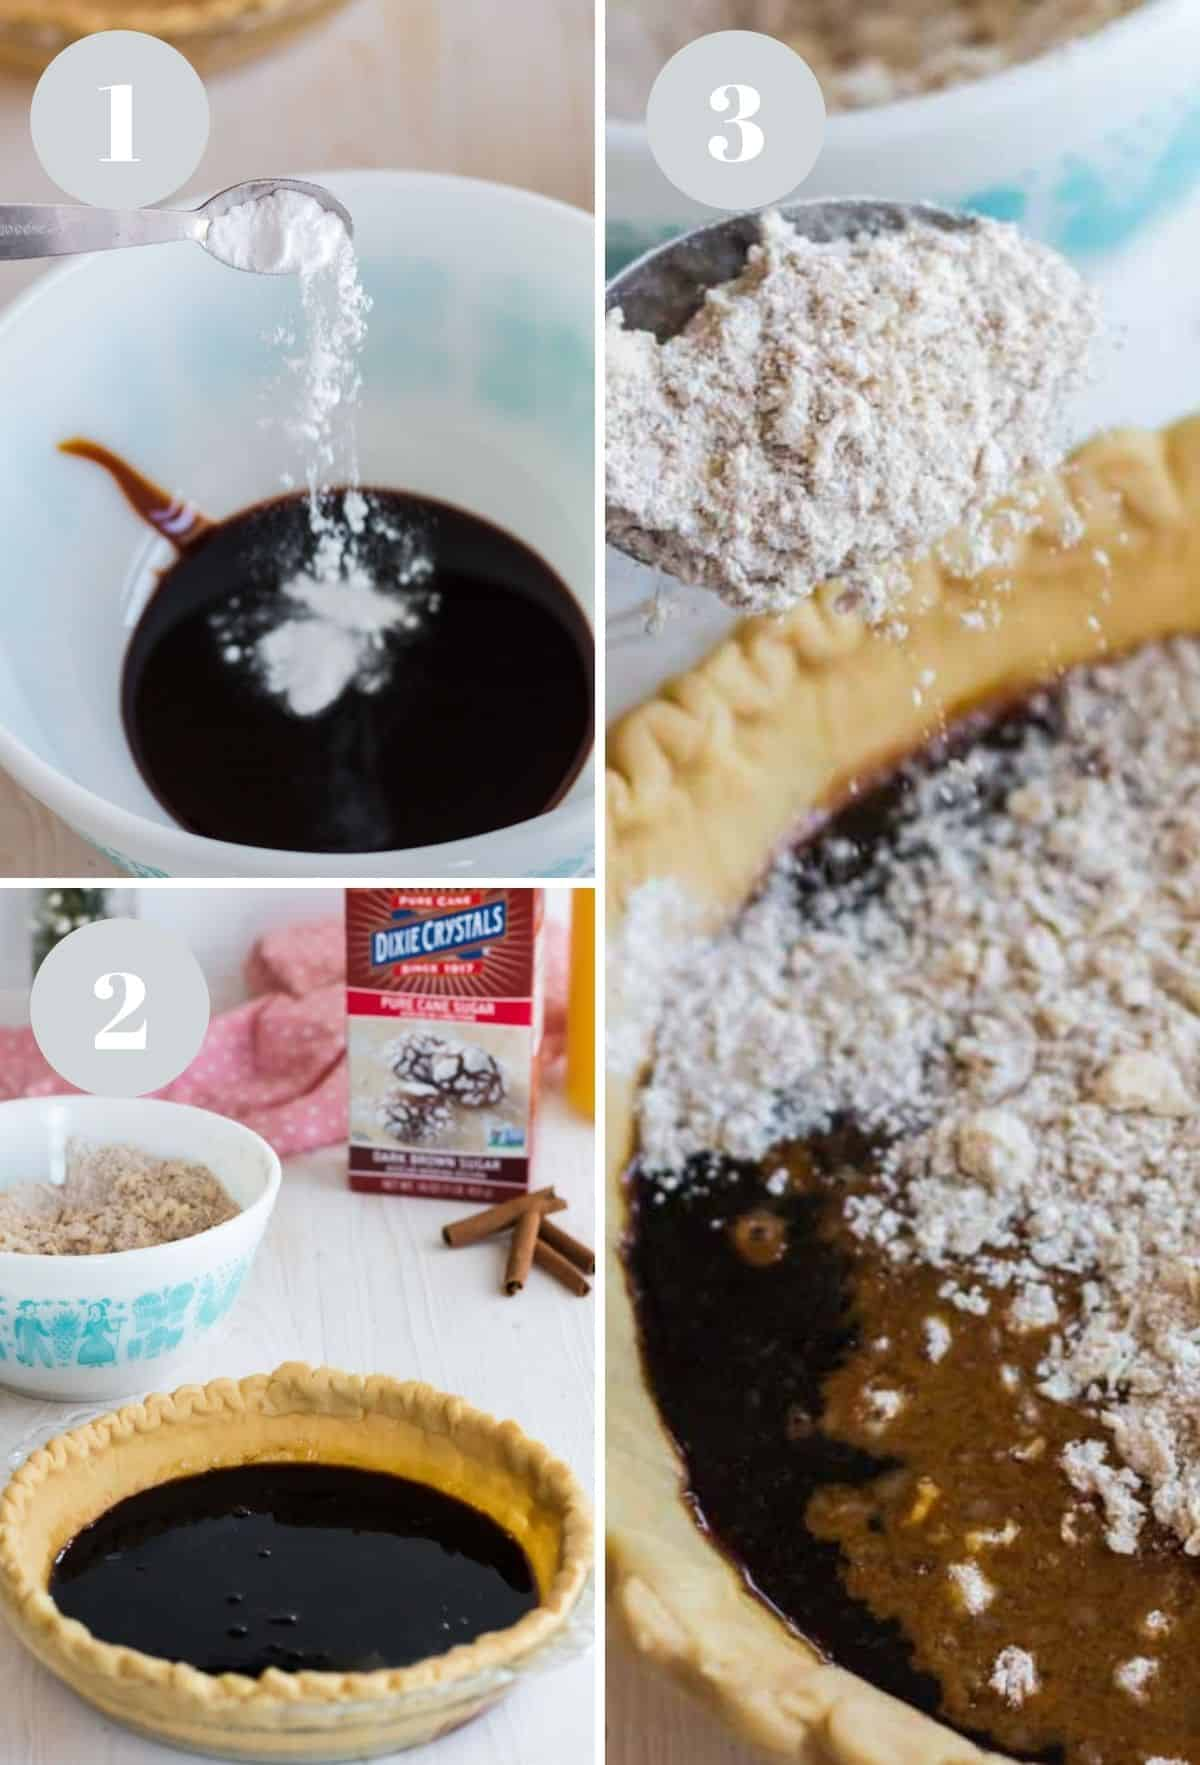 Adding molasses and water to a mixing bowl and a crumb topping on a pie.